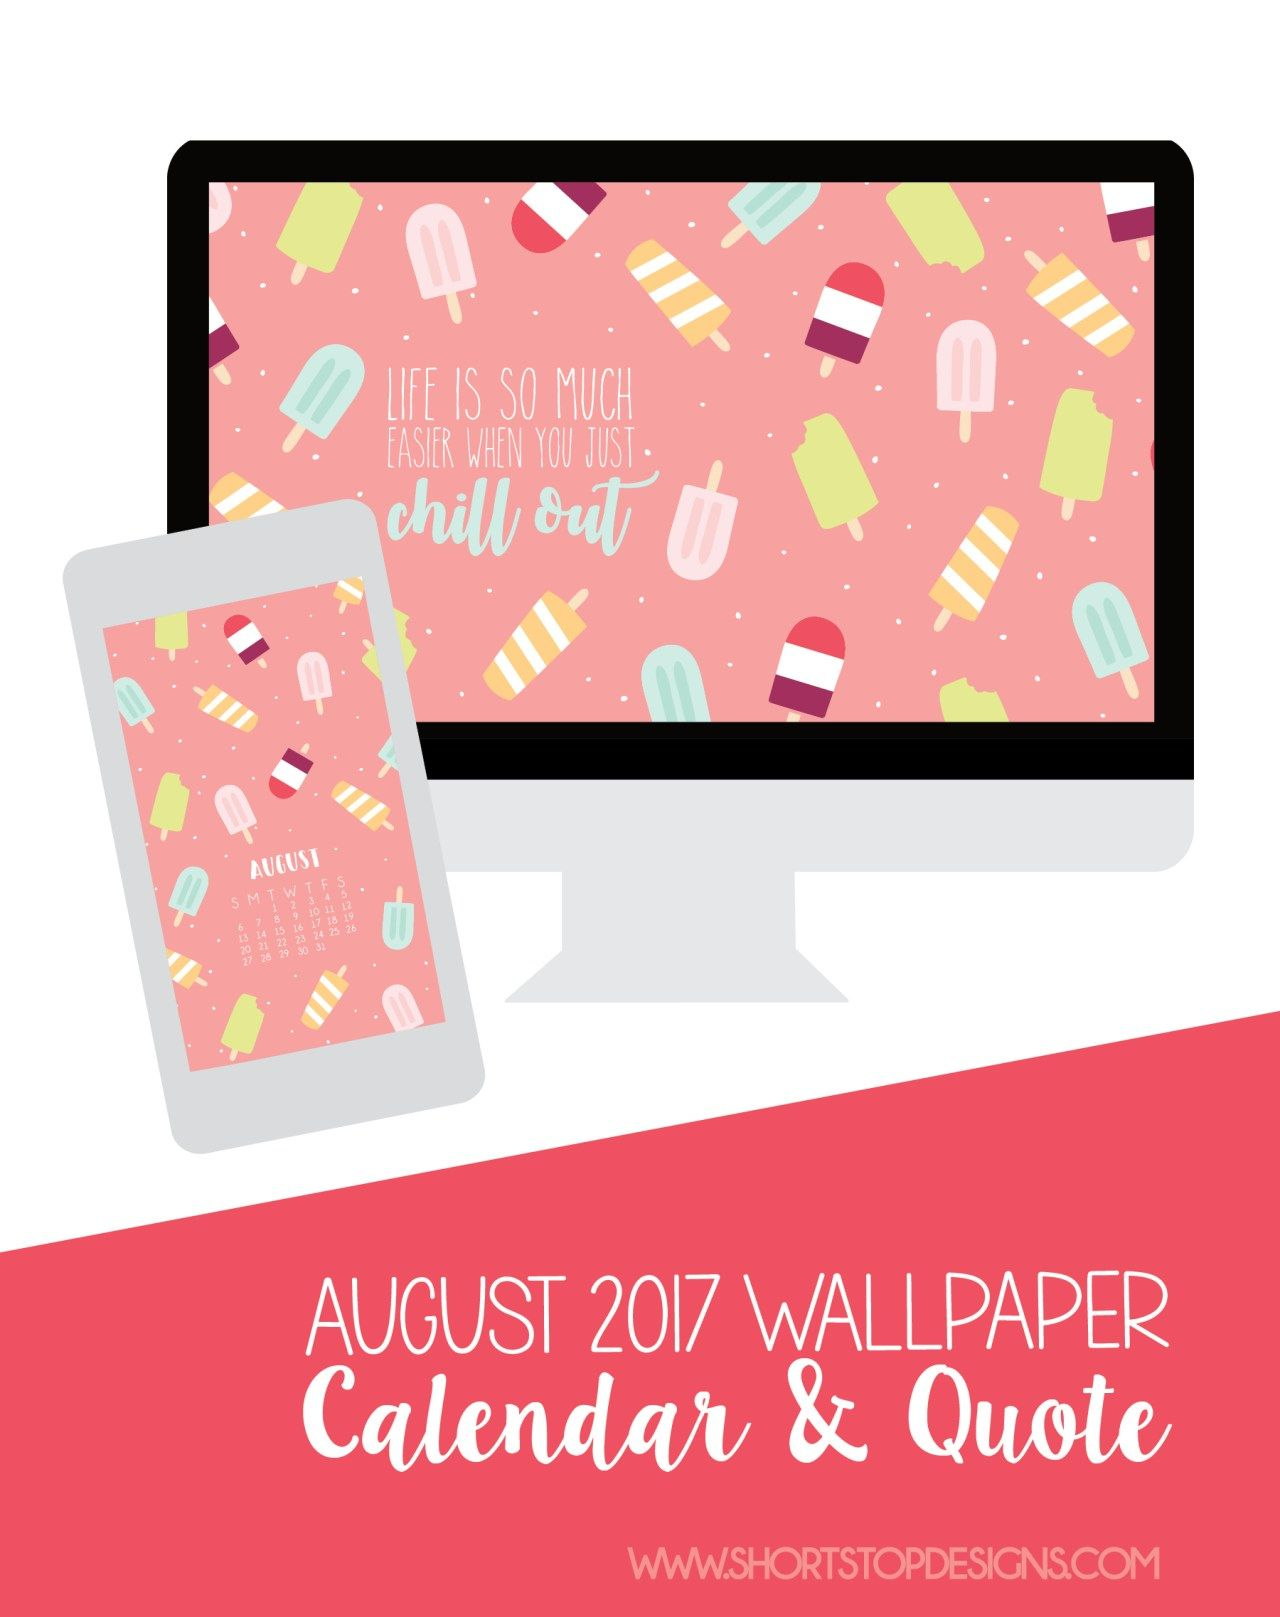 August 2017 Monthly Calendar U0026 Quote | Popsicle Desktop Wallpaper |  Popsicle Smartphone Wallpaper | Popsicle